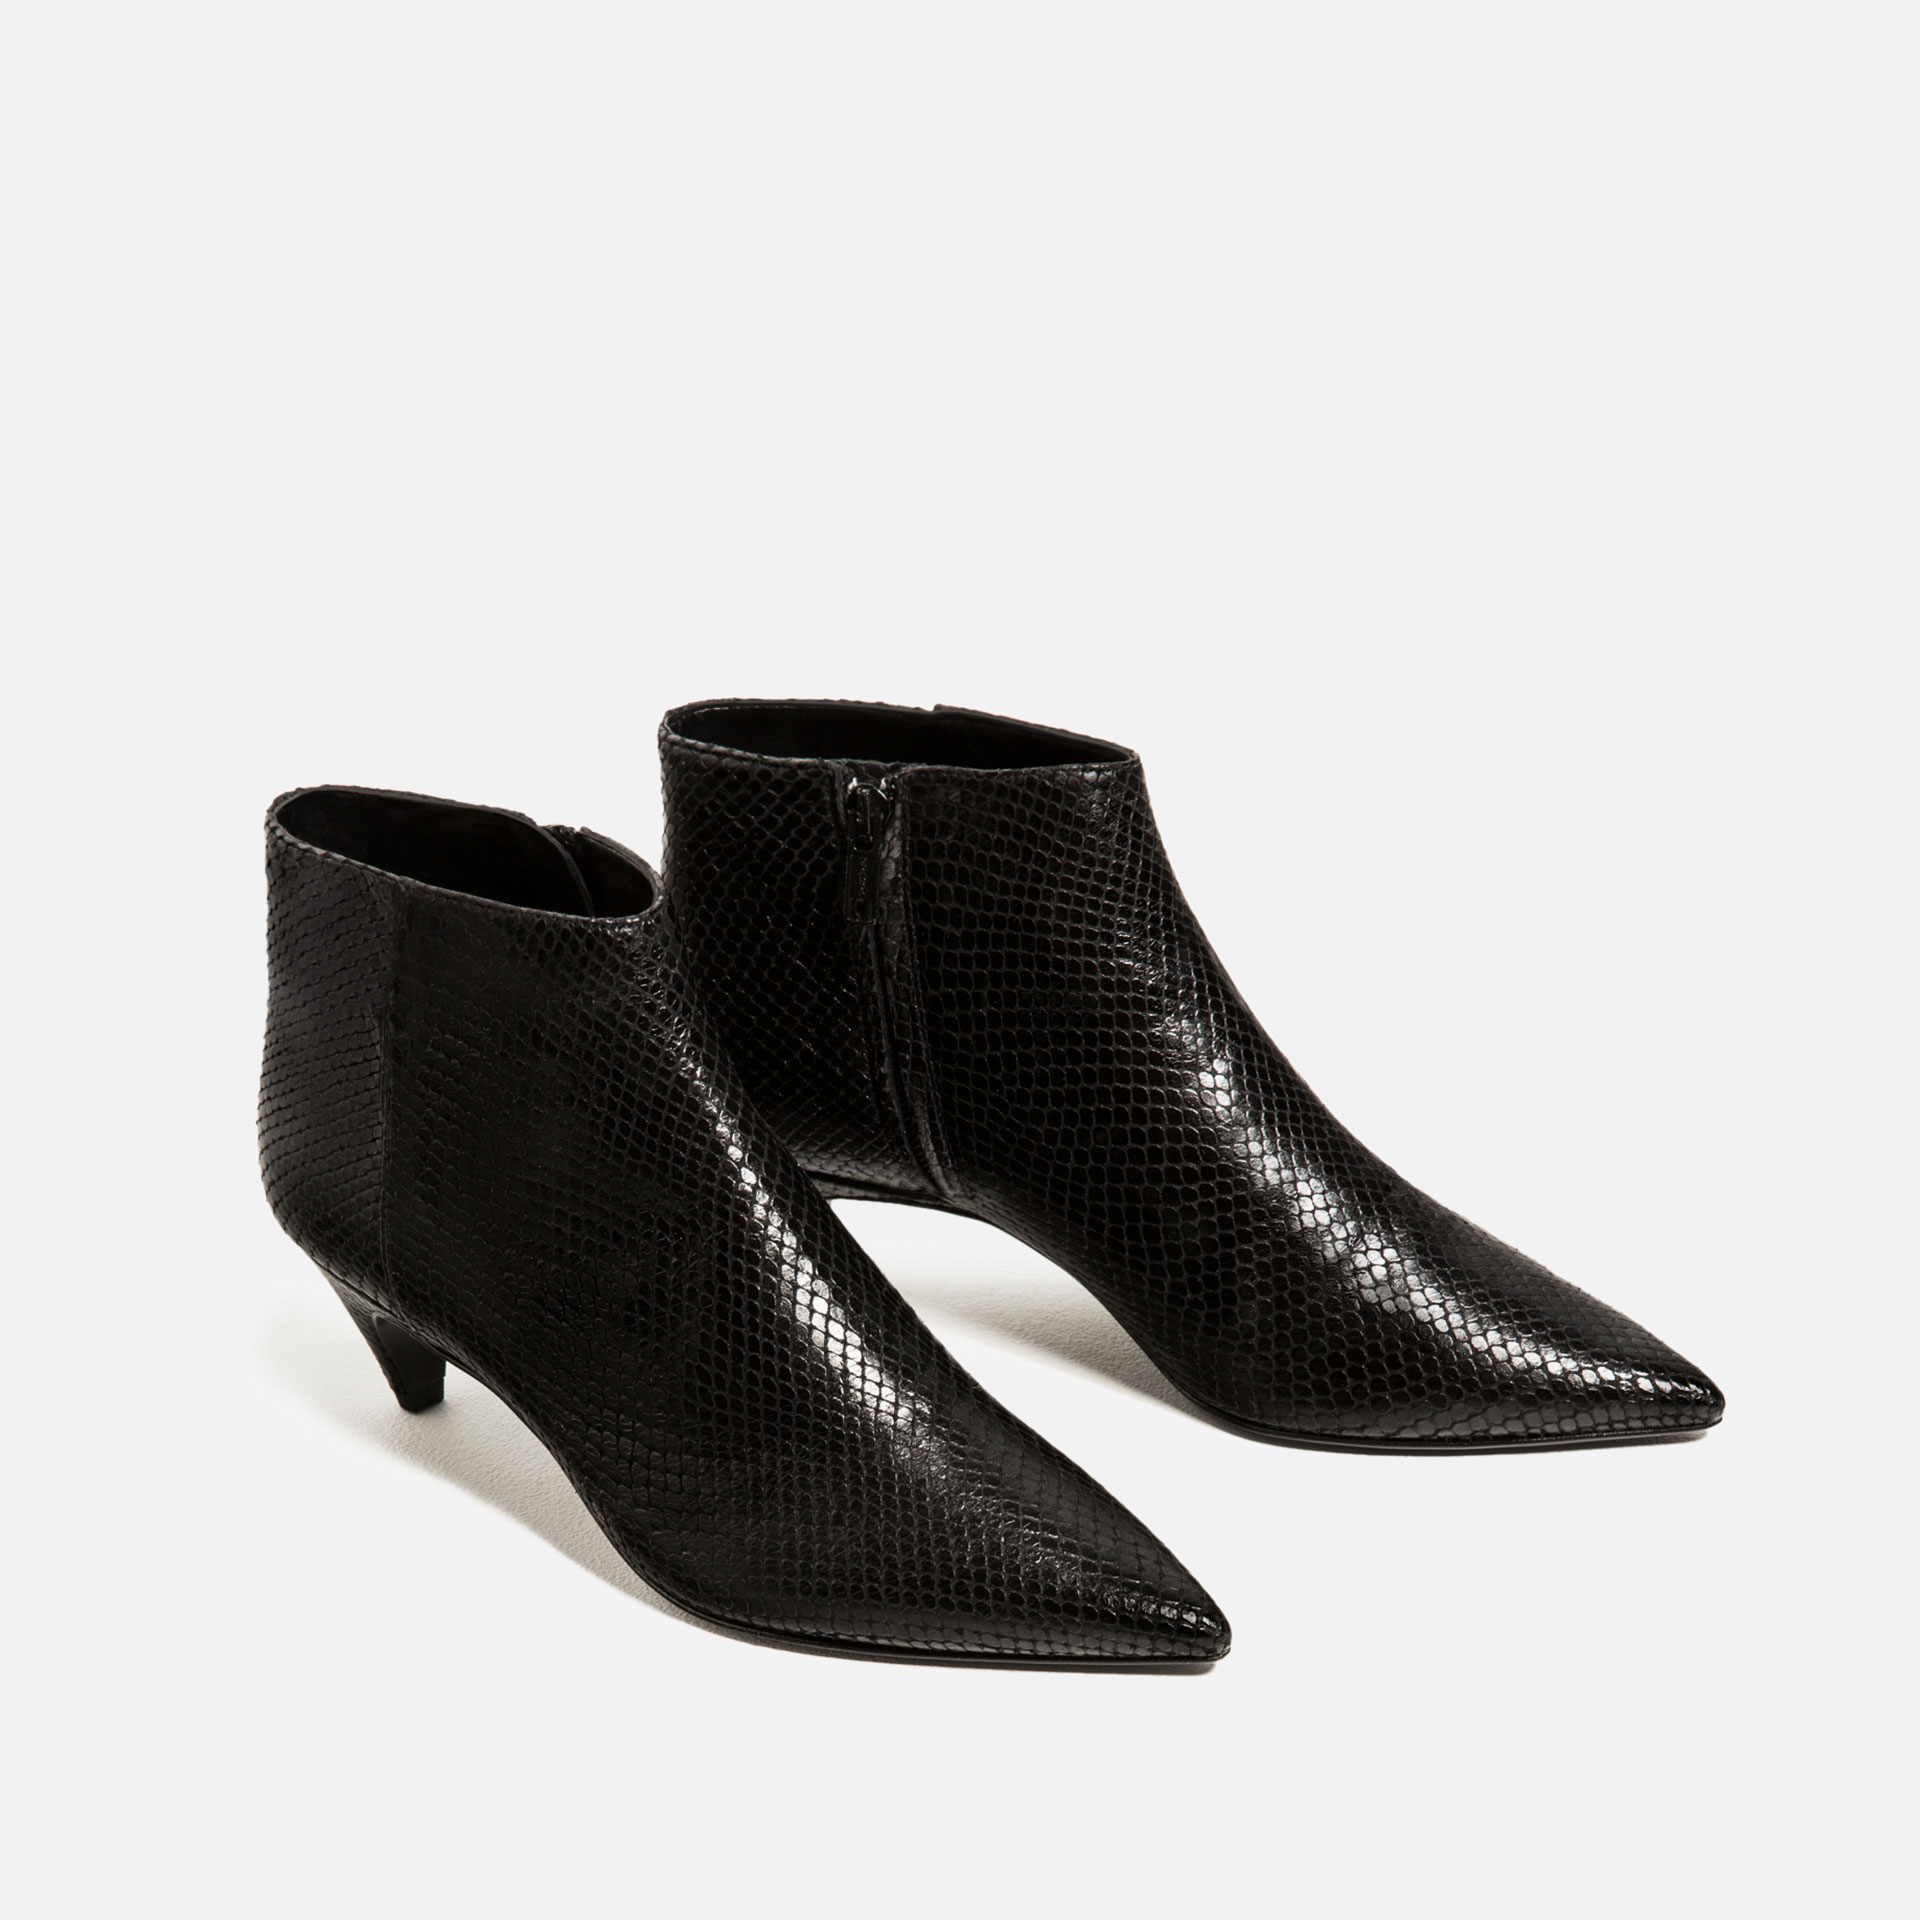 27 Best Ankle Boots and Booties for Women for Every Budget ...